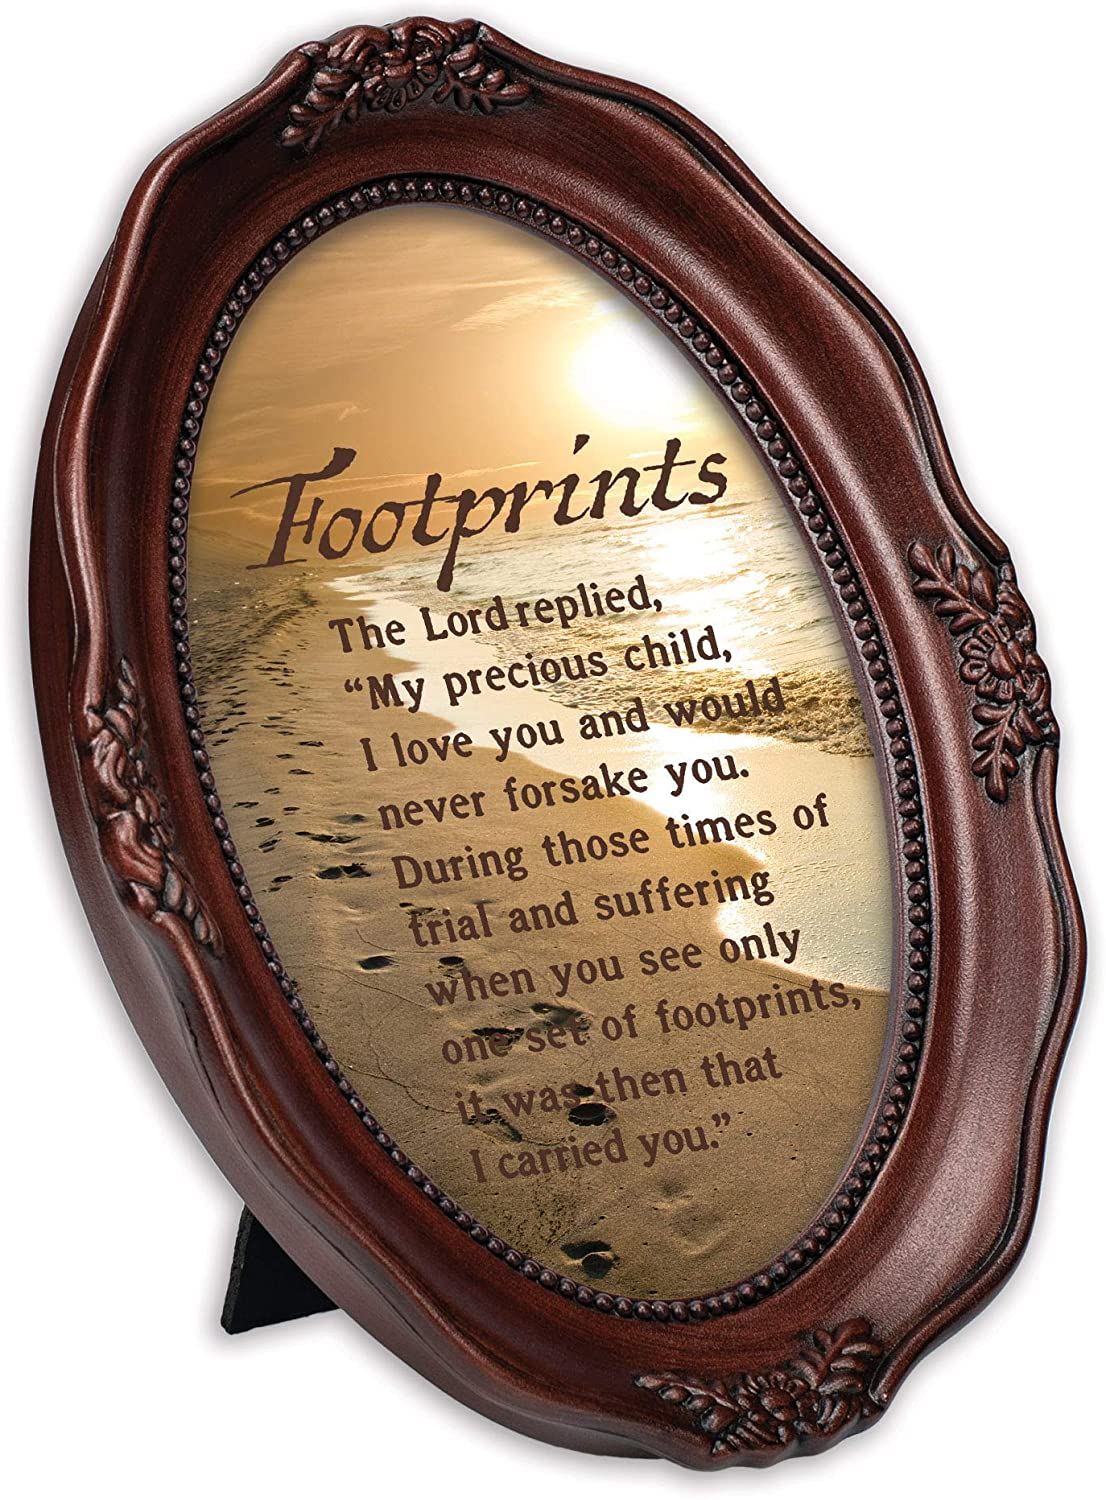 Cottage Garden Footprints in The Sand Mahogany Finish Wavy 5 x 7 Oval Table Top and Wall Photo Frame